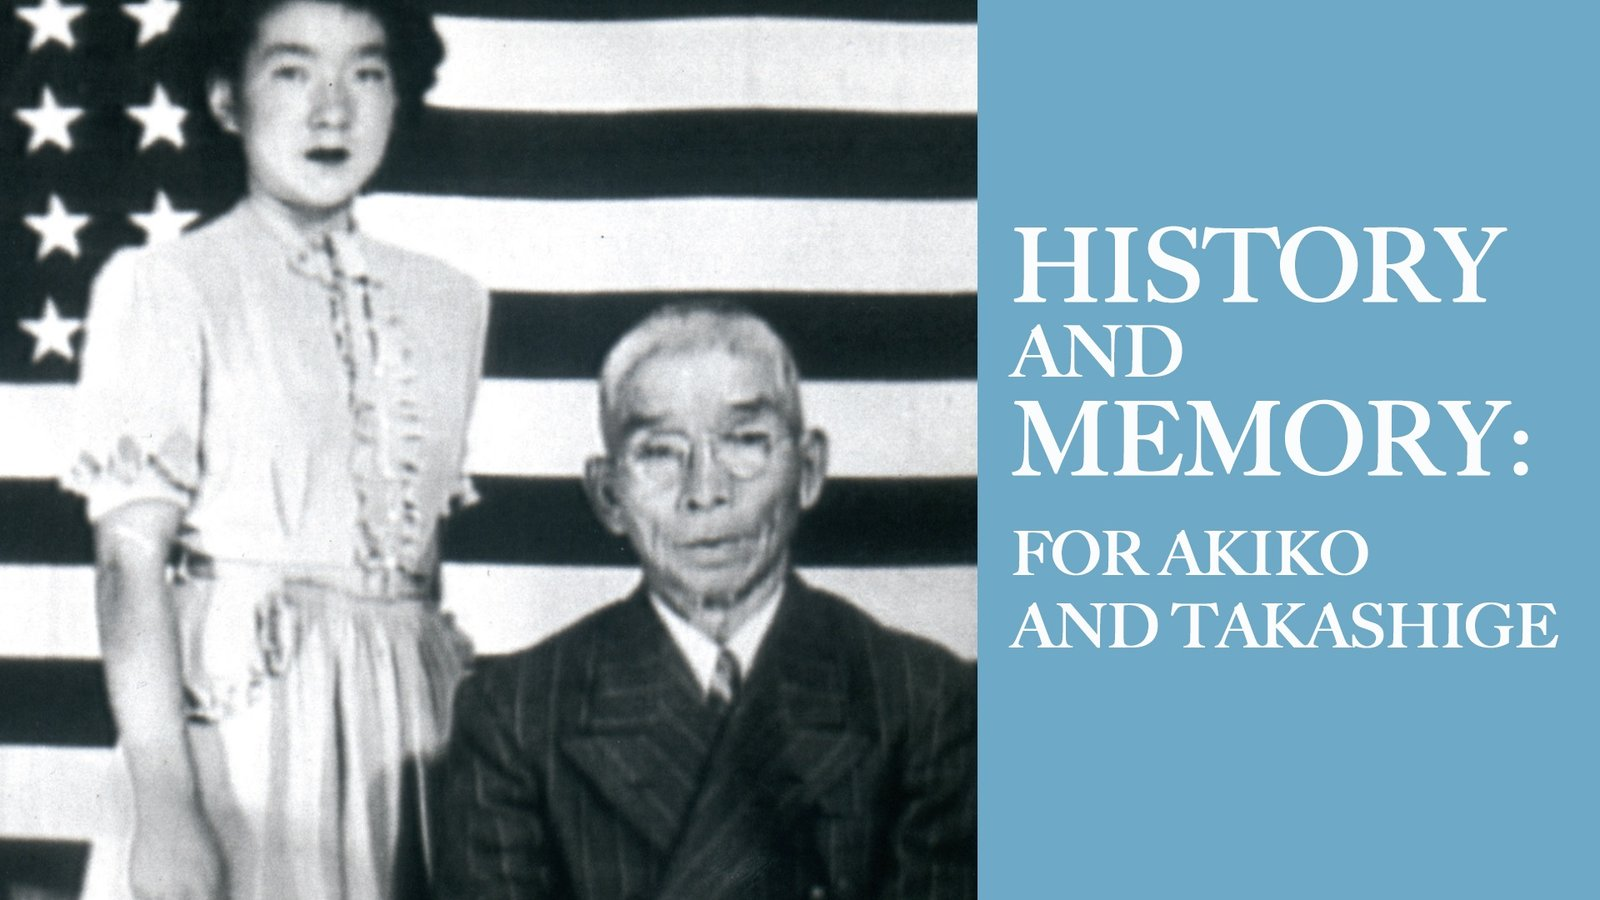 History and Memory: For Akiko and Takashige